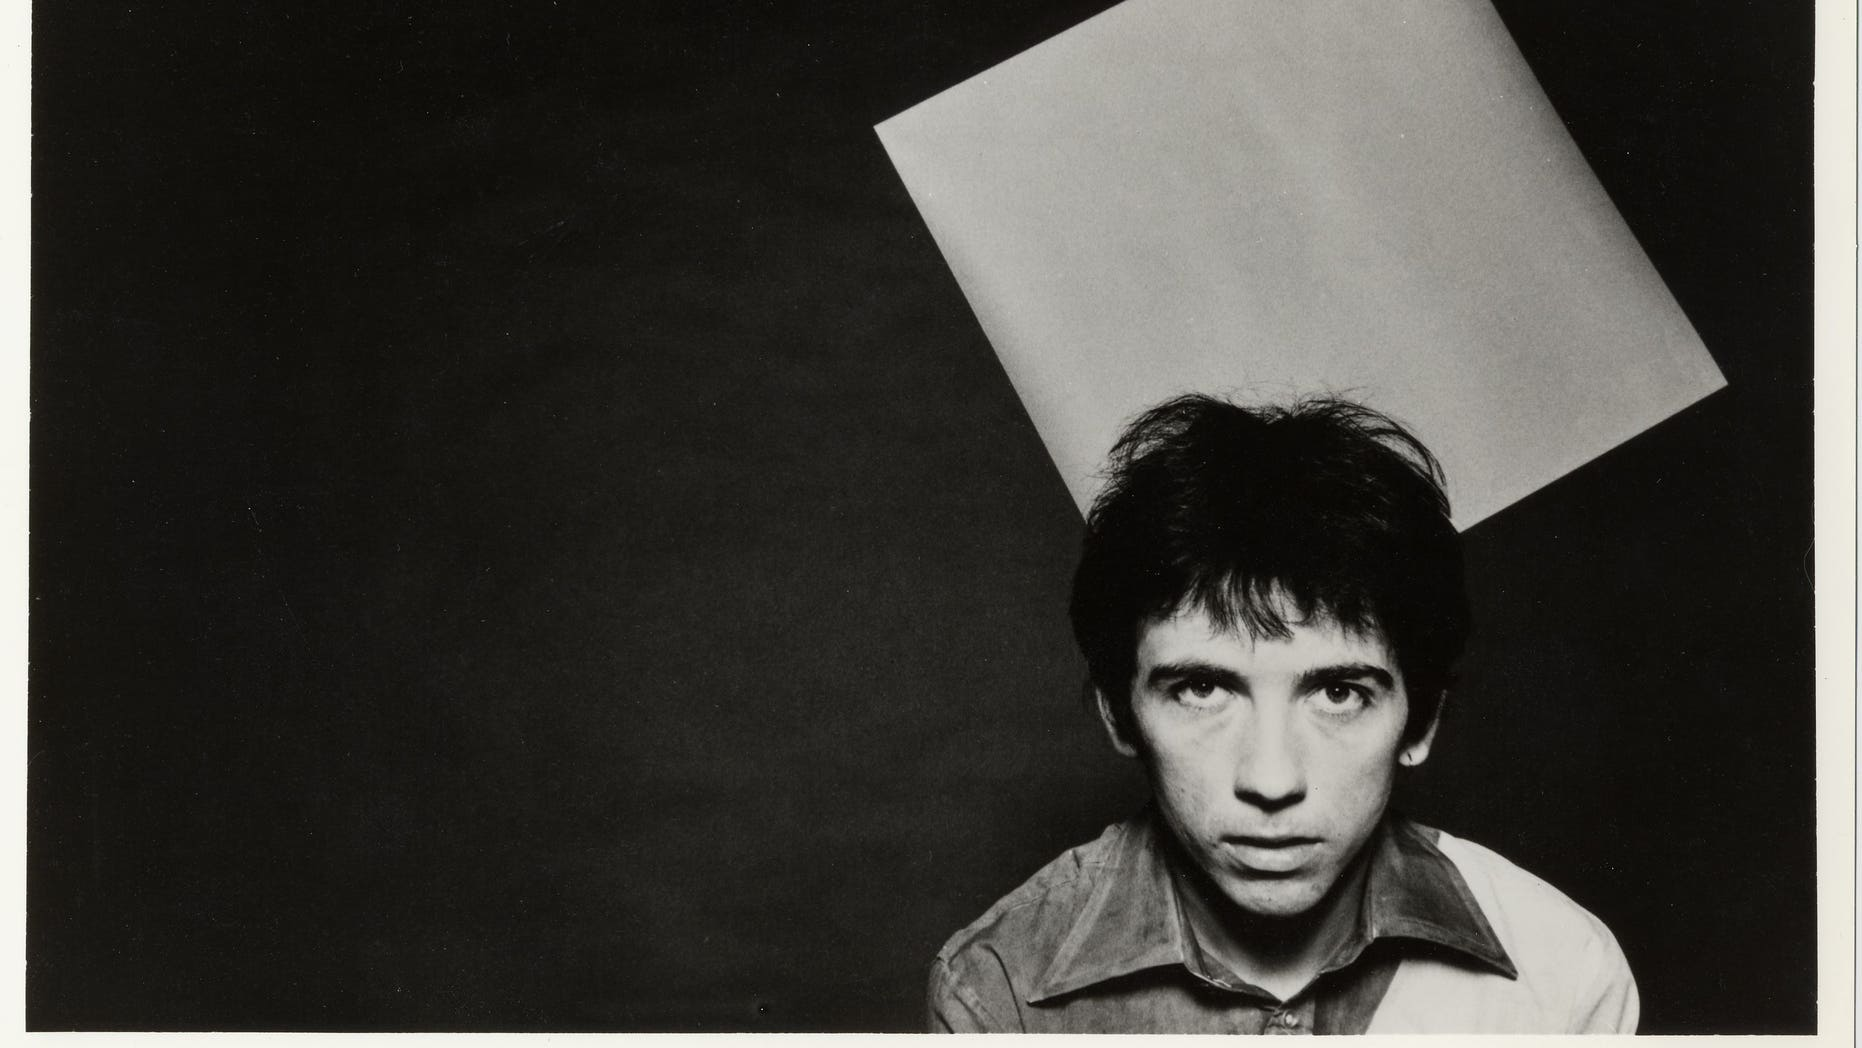 Pete Shelley, pictured here in 1978, has died. He was 63.